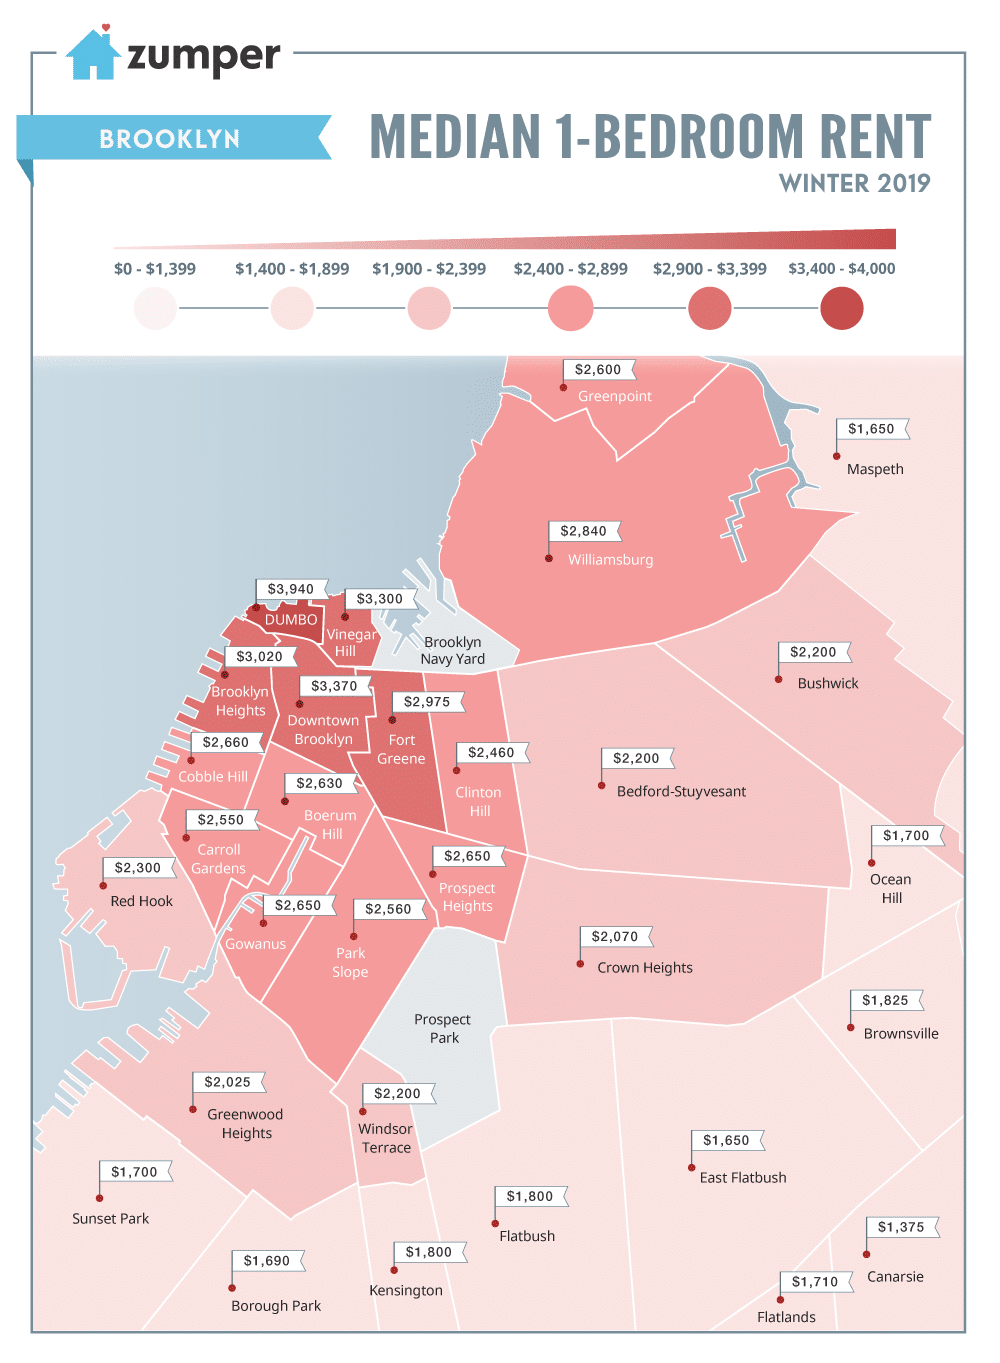 Mapped: New York City Neighborhood Rent Prices (Winter 2019) on new jersey and staten island map, manhattan financial district skyline, lower east side new york map, new york city times square map, new york city 1860 map, new york city street grid map, westchester county new york zip code map, new york city boroughs map, new york times square hotel map, manhattan tv series, manhattan jewelry heist, san francisco tenderloin area map, manhattan midtown, manhattan bus routes, manhattan areas, manhattan tumblr, manhattan satellite, new york city walking map, manhattan spring, central park map,